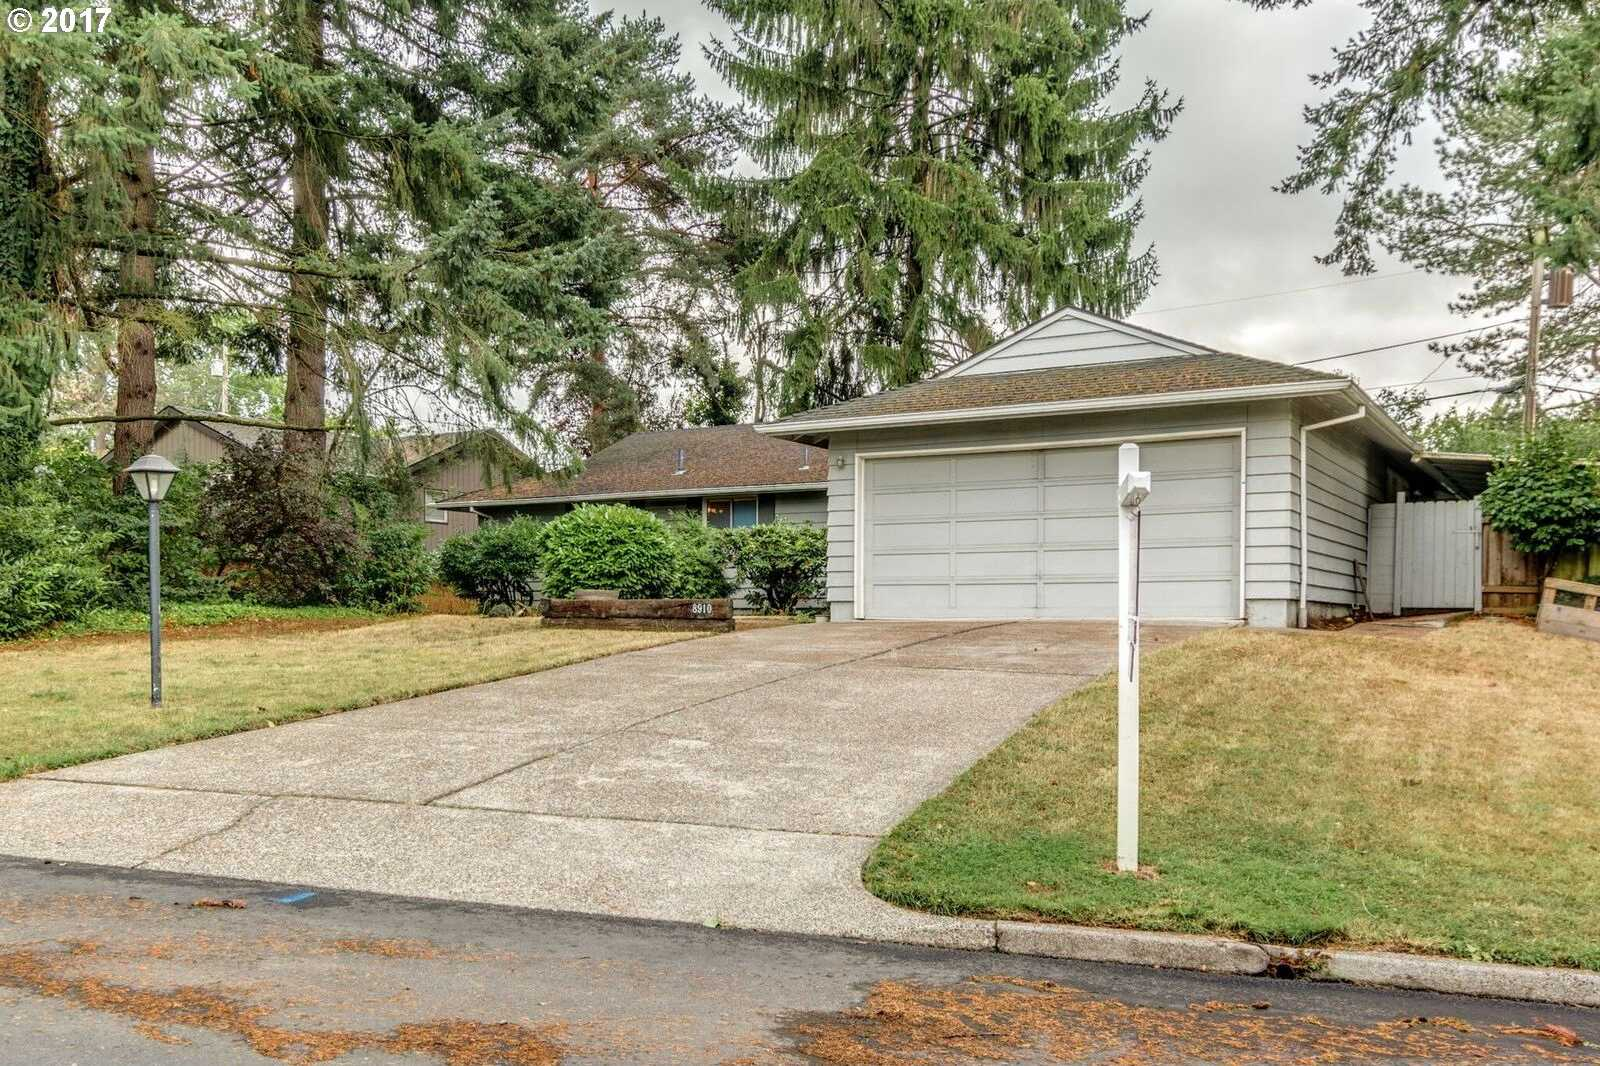 $495,000 - 3Br/2Ba -  for Sale in Portland